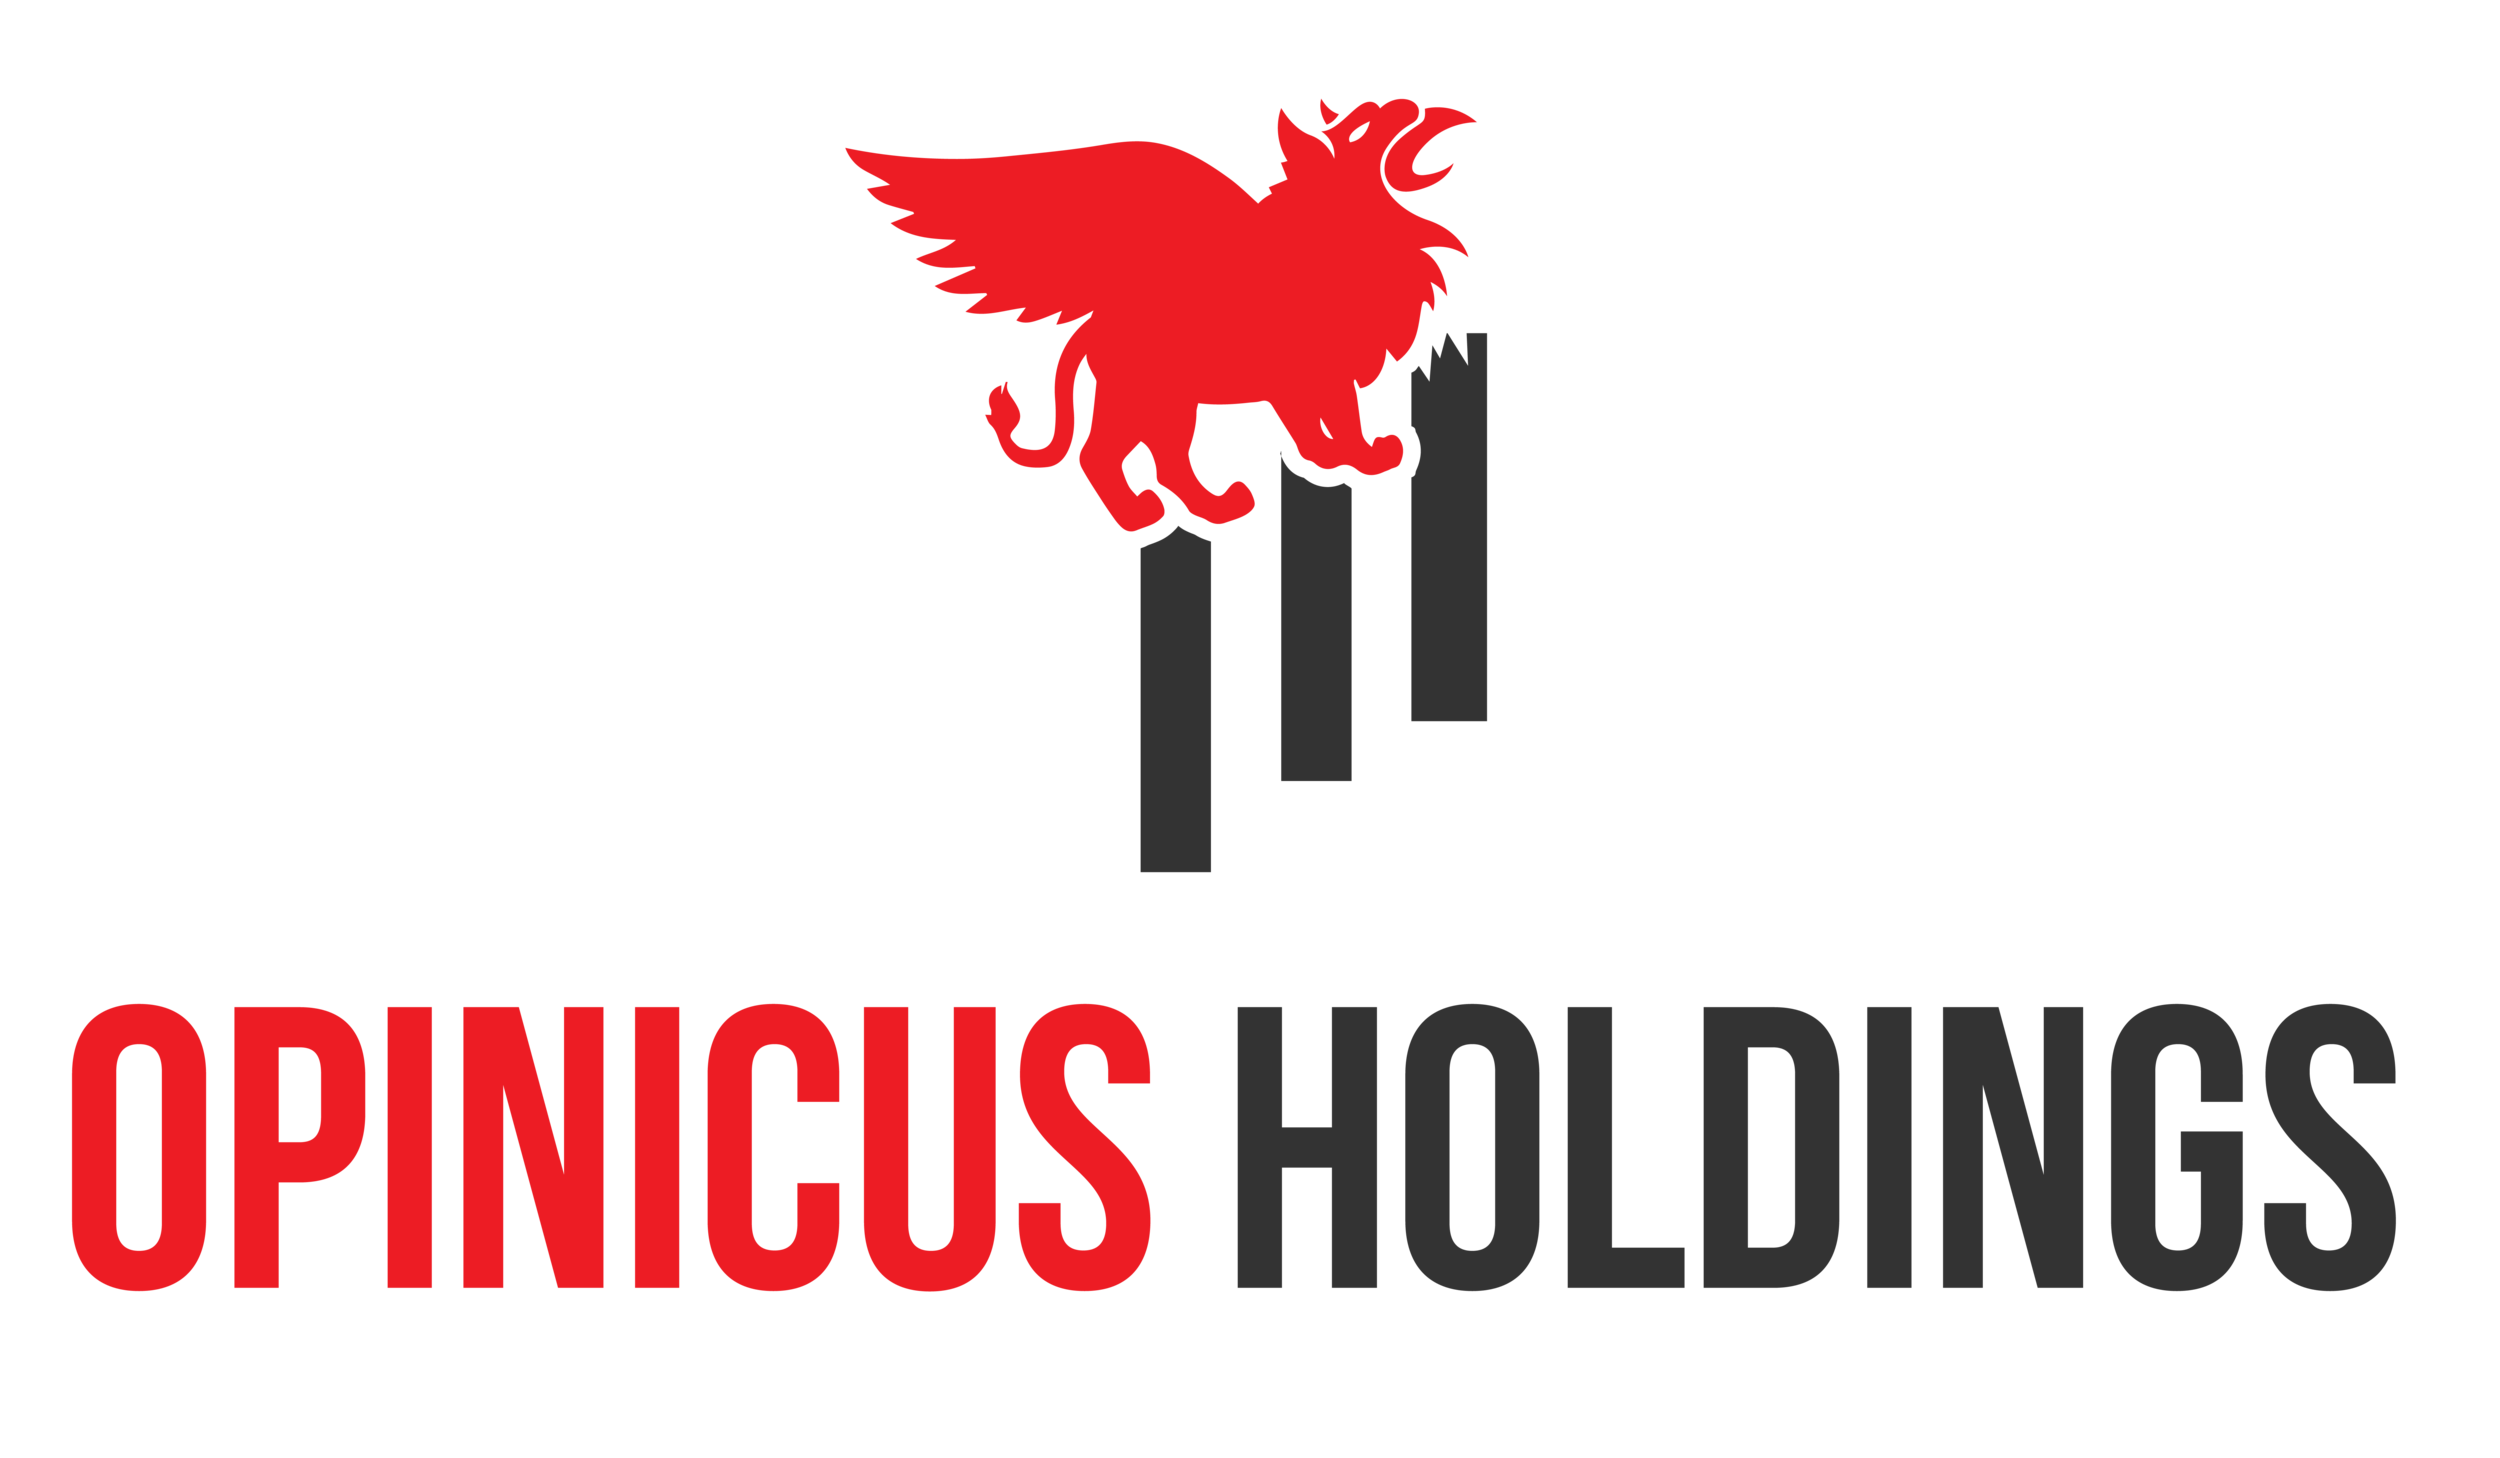 Opinicus Holdings-SF-01.png